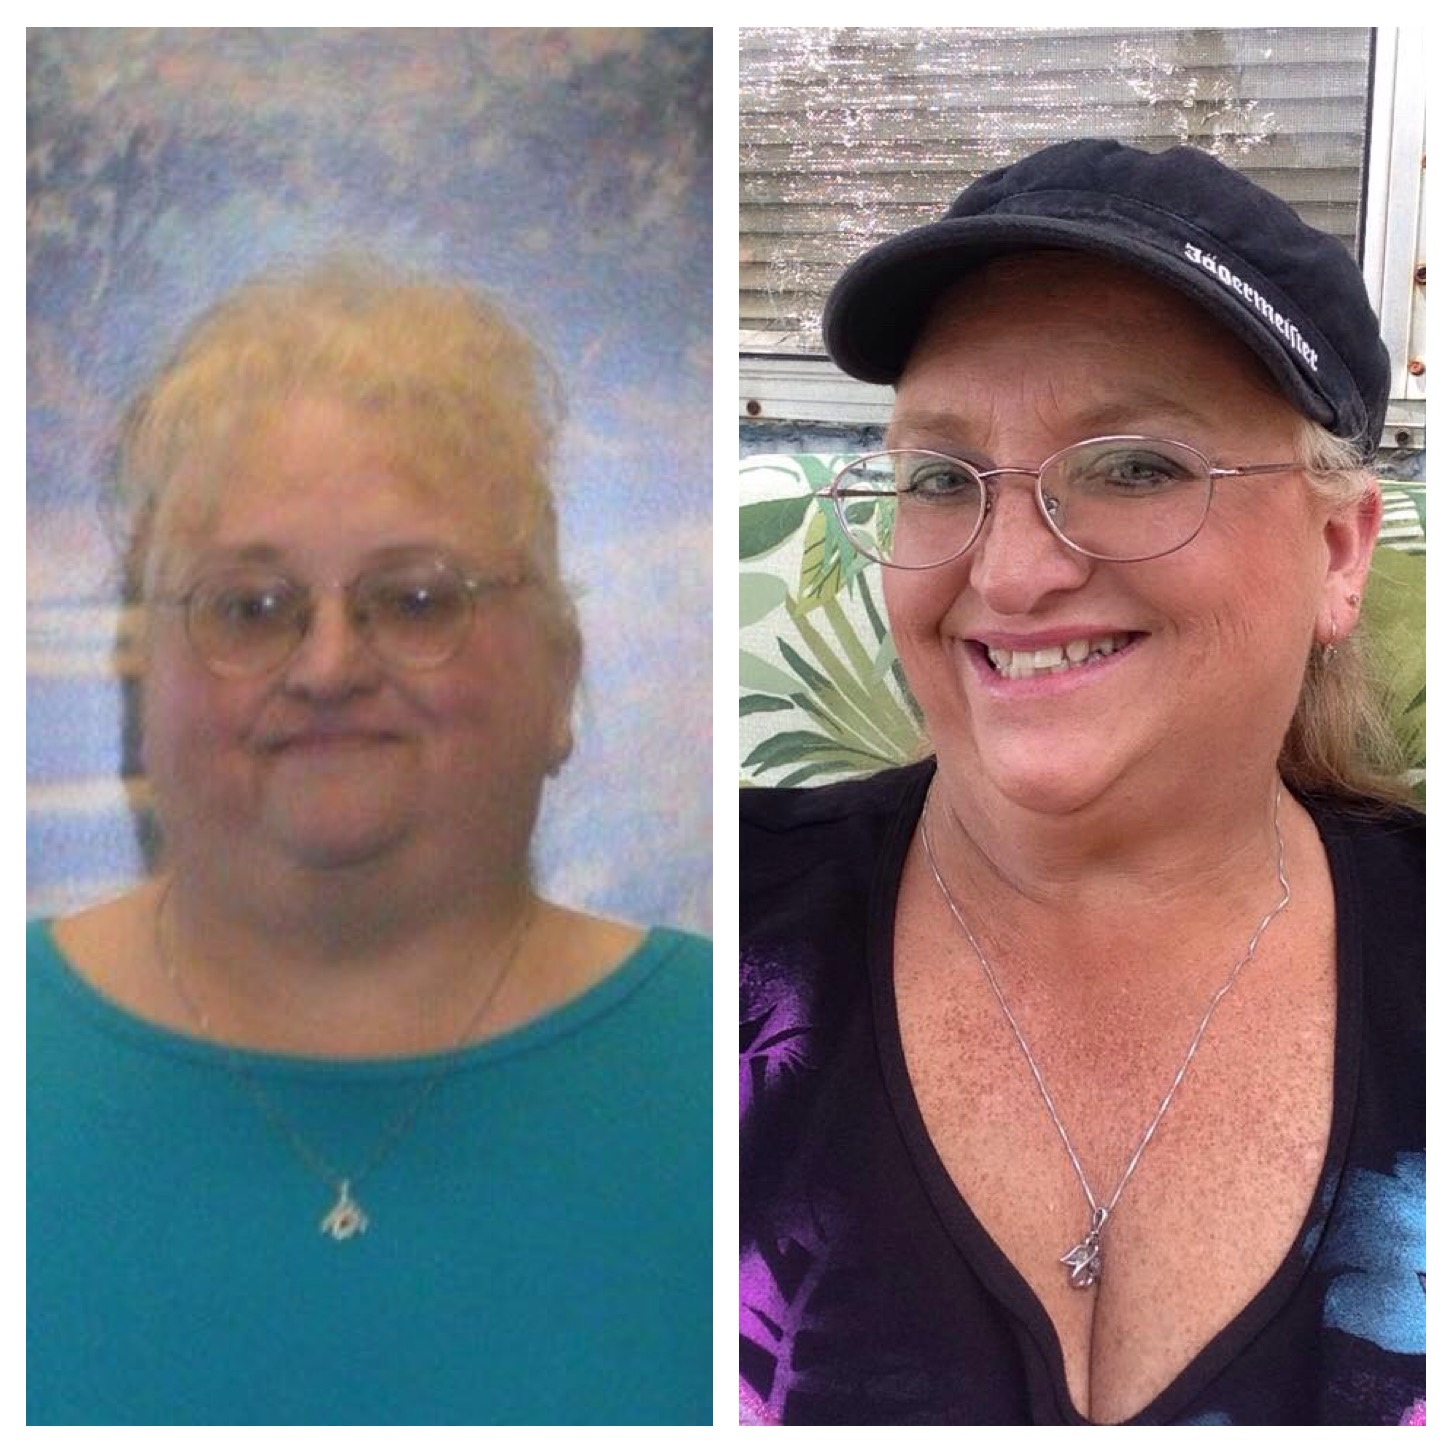 Seneca Woman has lost 240lbs. and still going